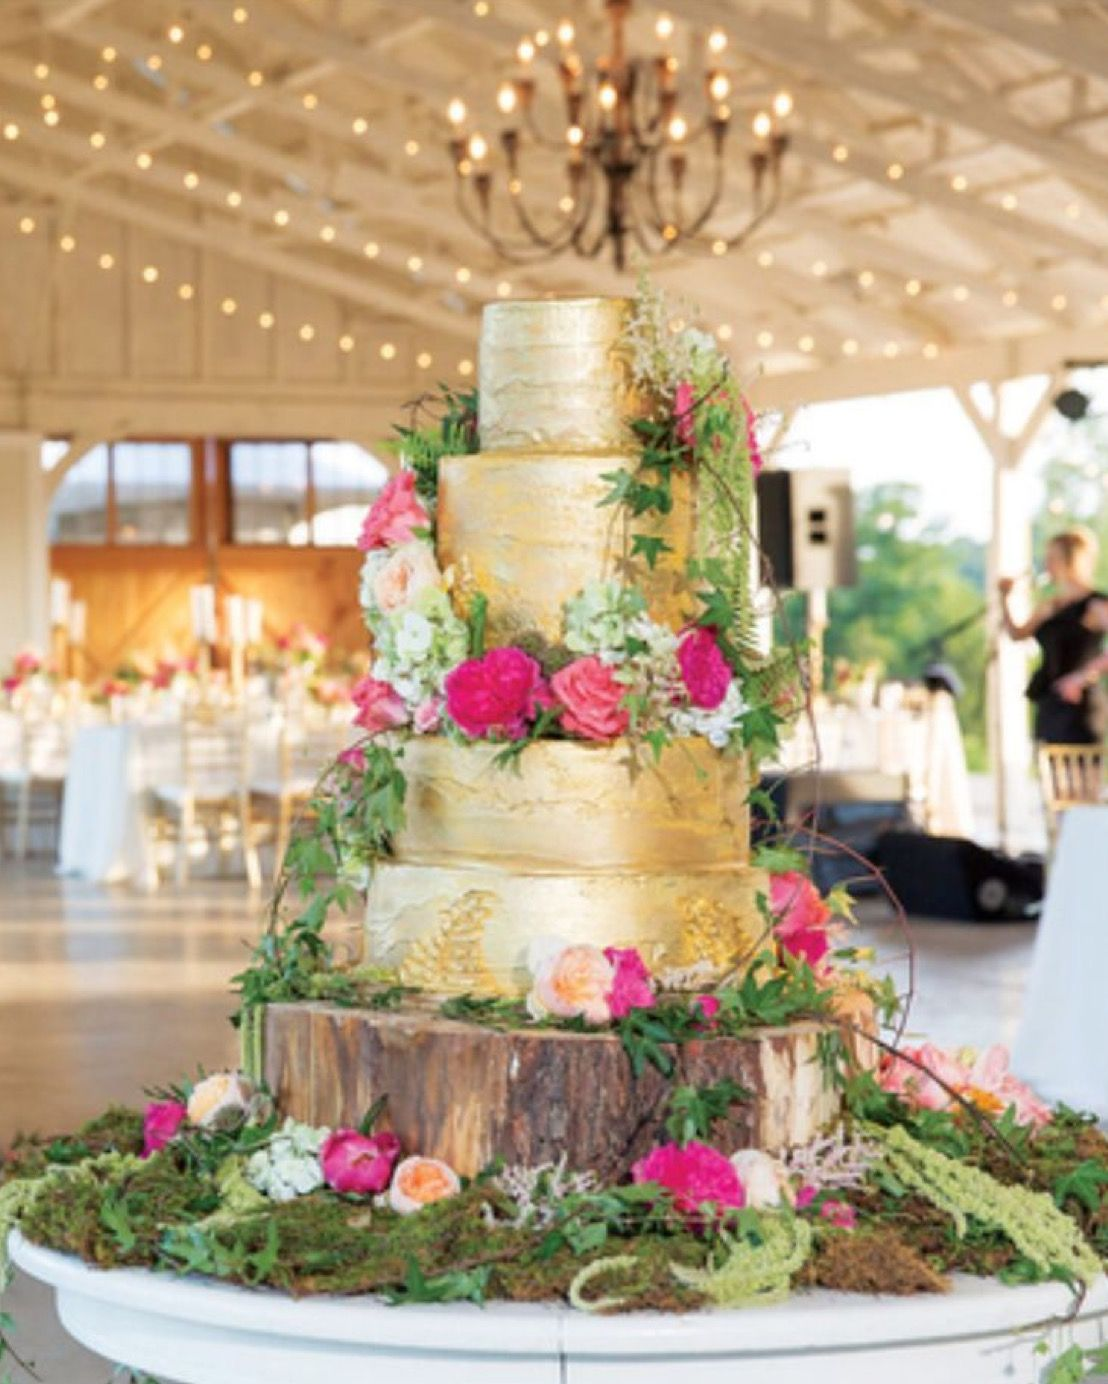 Love the florals and moss surrounding this cake